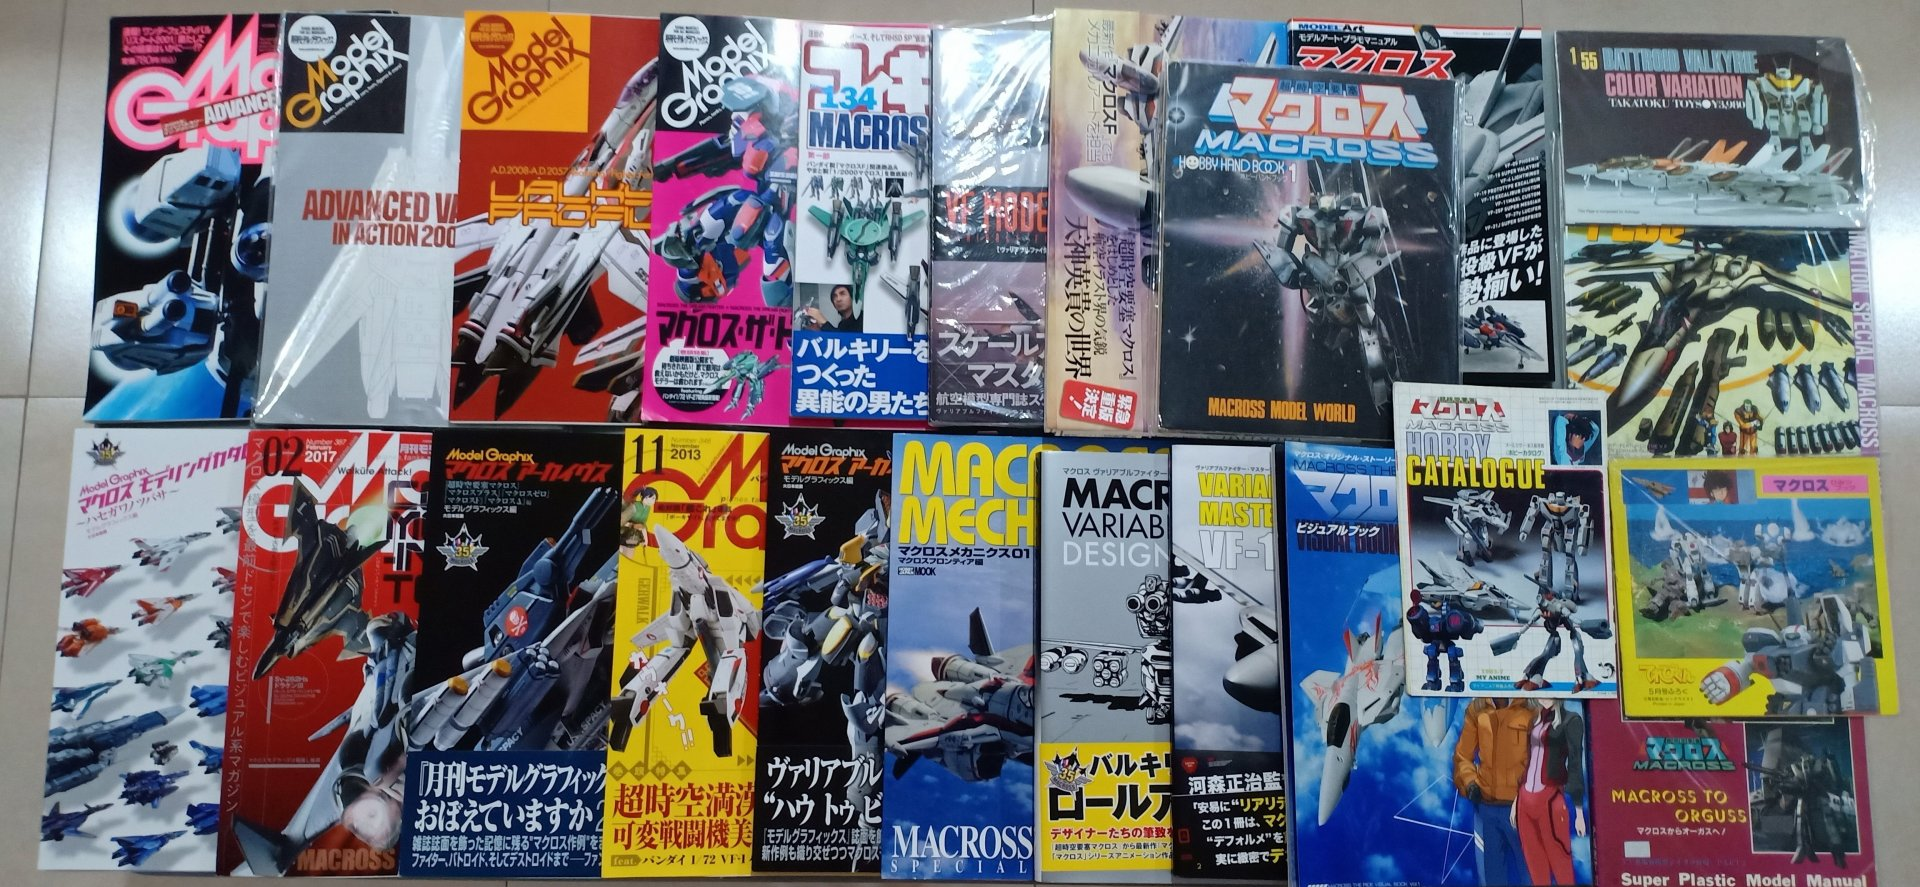 Christopher Macross Magazine Collection.jpg